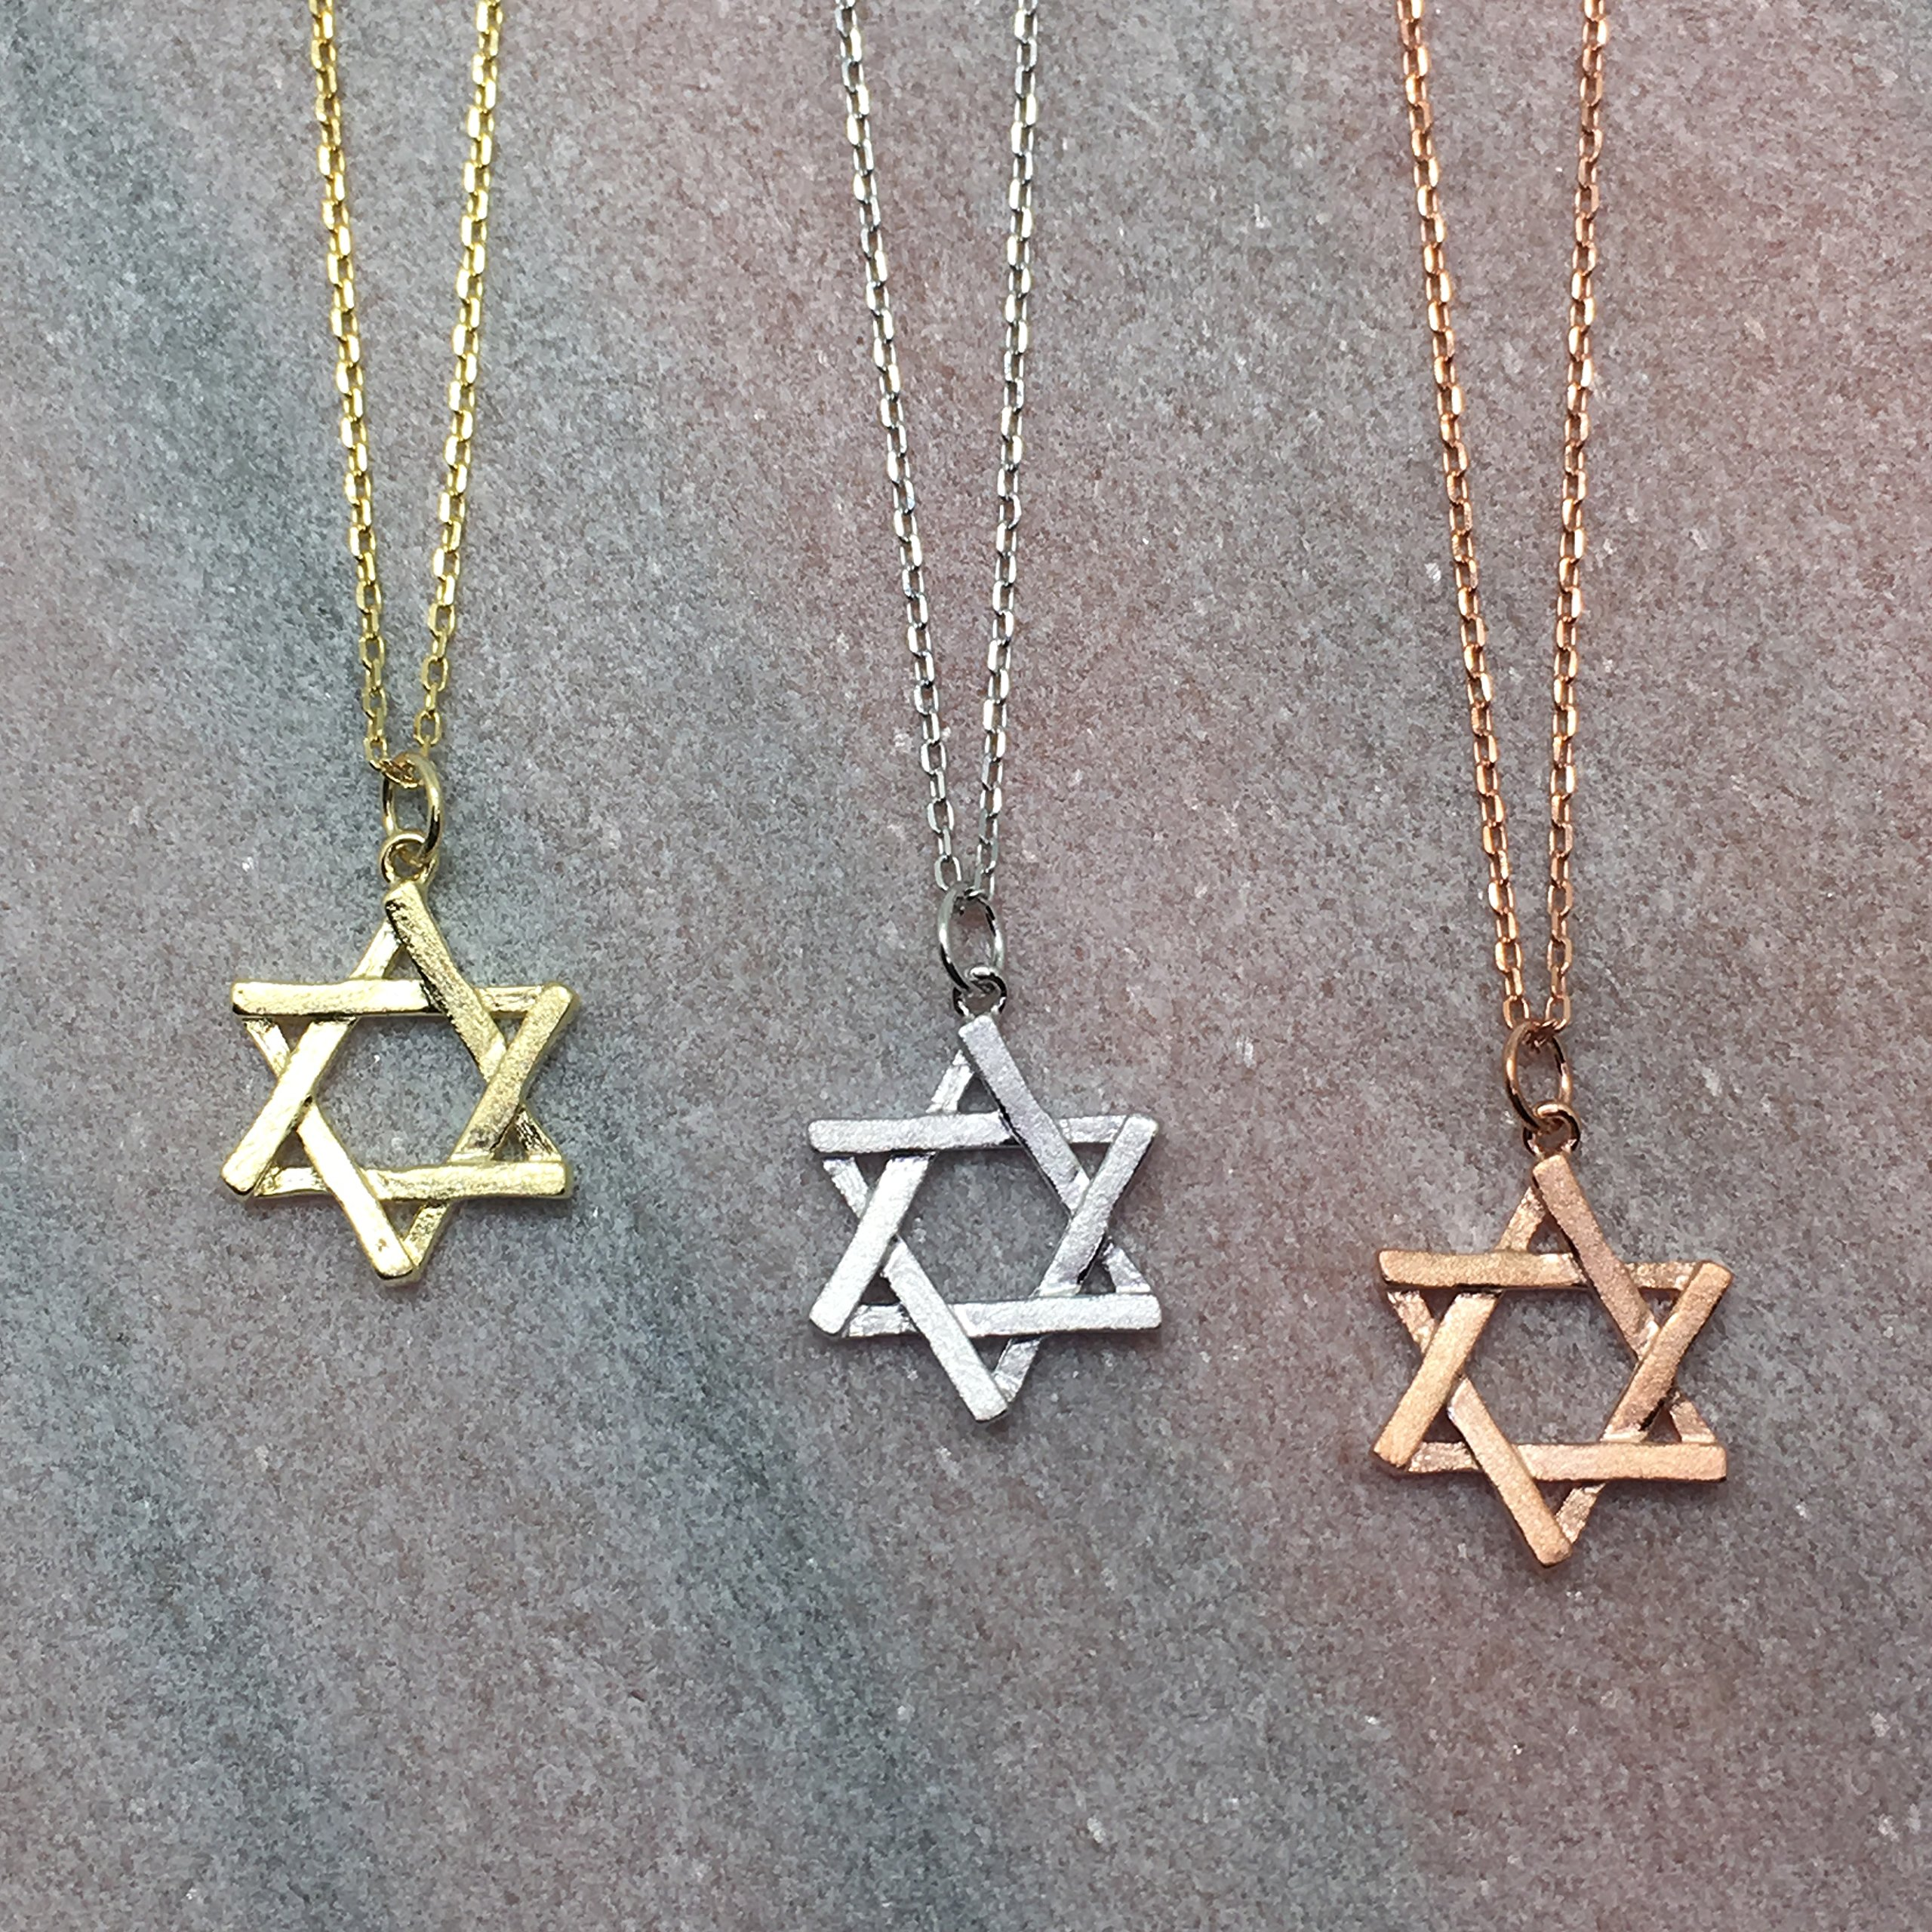 Rhodium Plated Silver Matte Finish Brush Textured 6 Point Jewish Star David Pendant Necklace, 18'' by Spoil Cupid (Image #4)